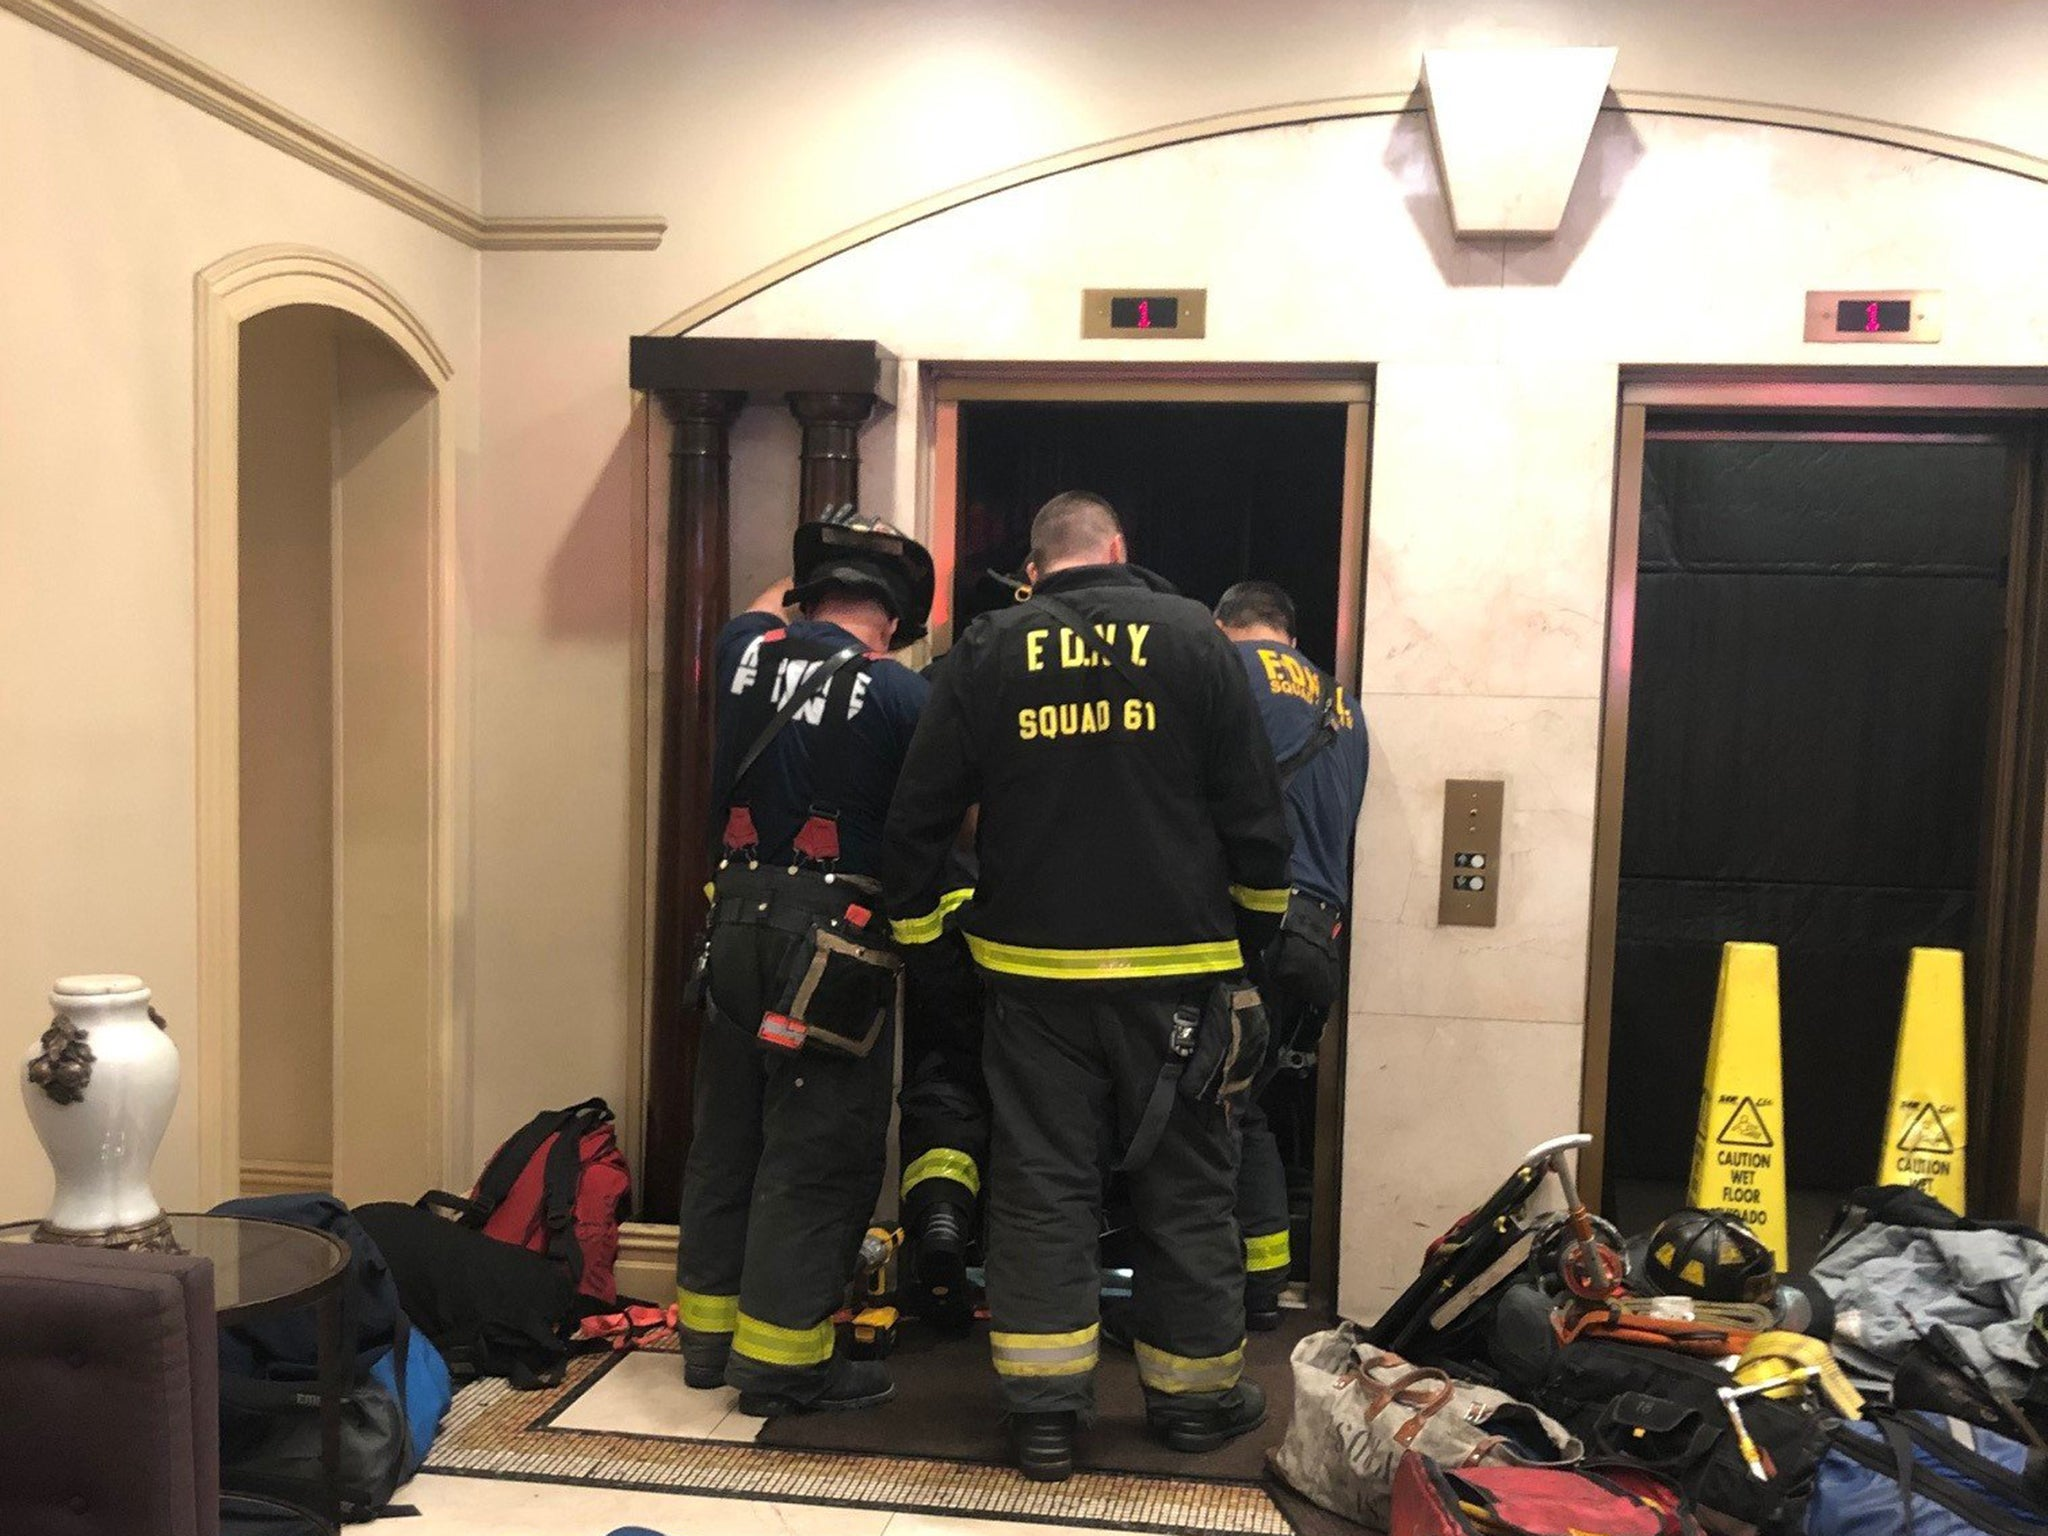 Man crushed to death by lift in Manhattan building recently fined over elevator safety